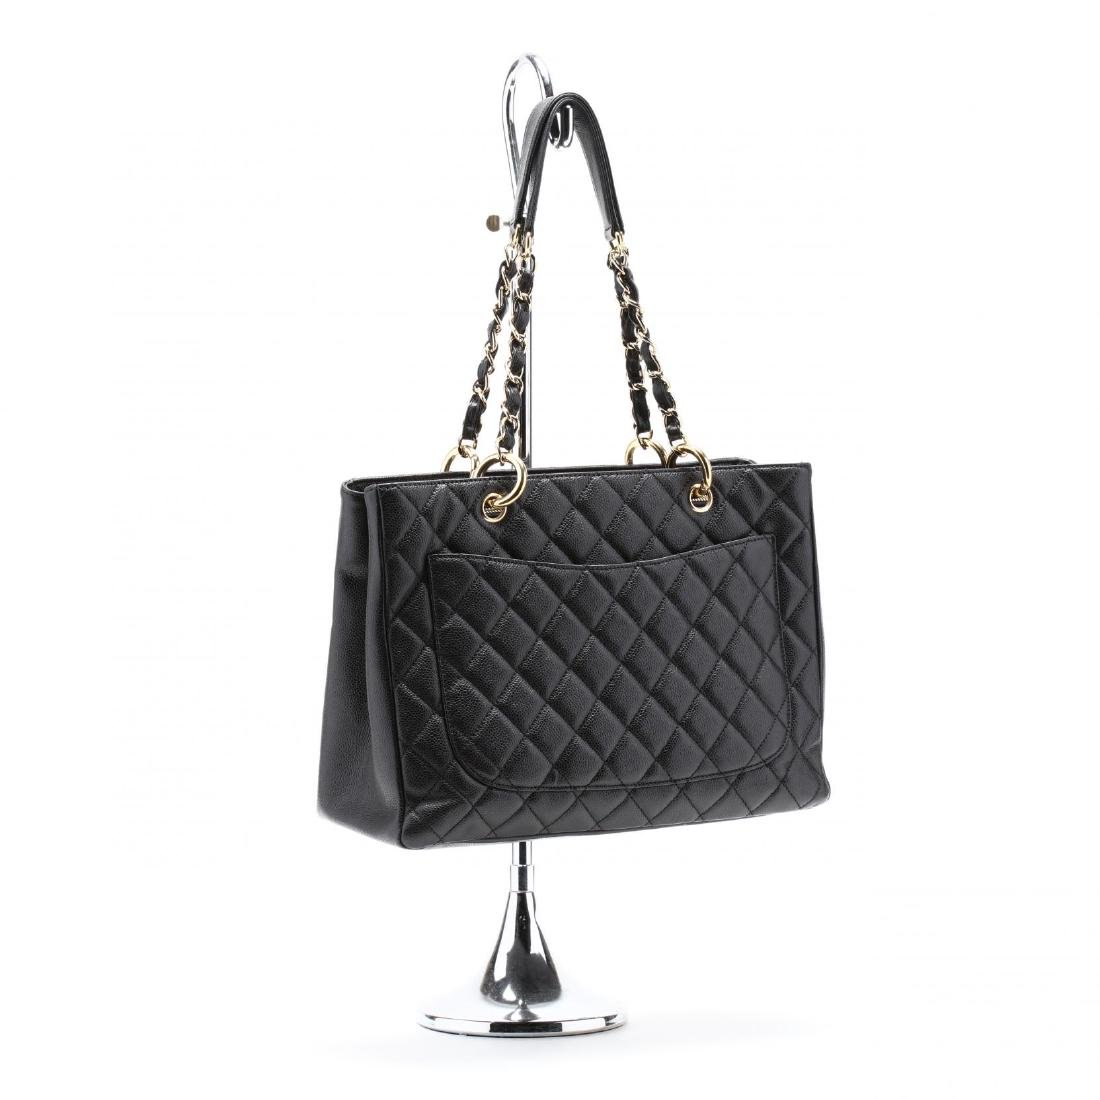 Quilted Black Caviar Leather Grand Shopping Tote - 2